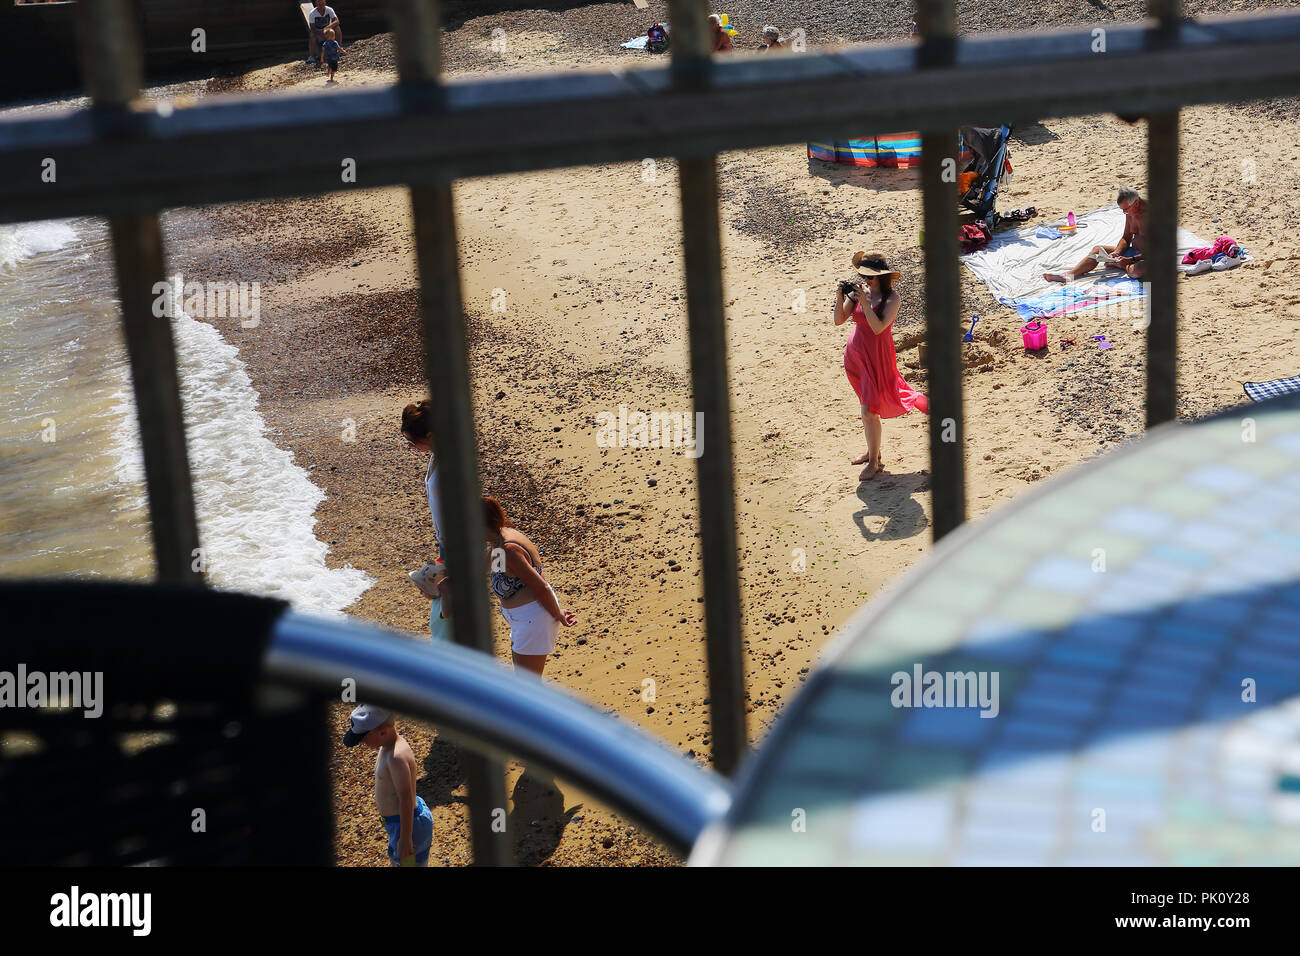 A young woman in a pretty dress takes photographs of holidaymakers on  the beach at Southwold, Suffolk, UK during the heatwave of 2018. - Stock Image